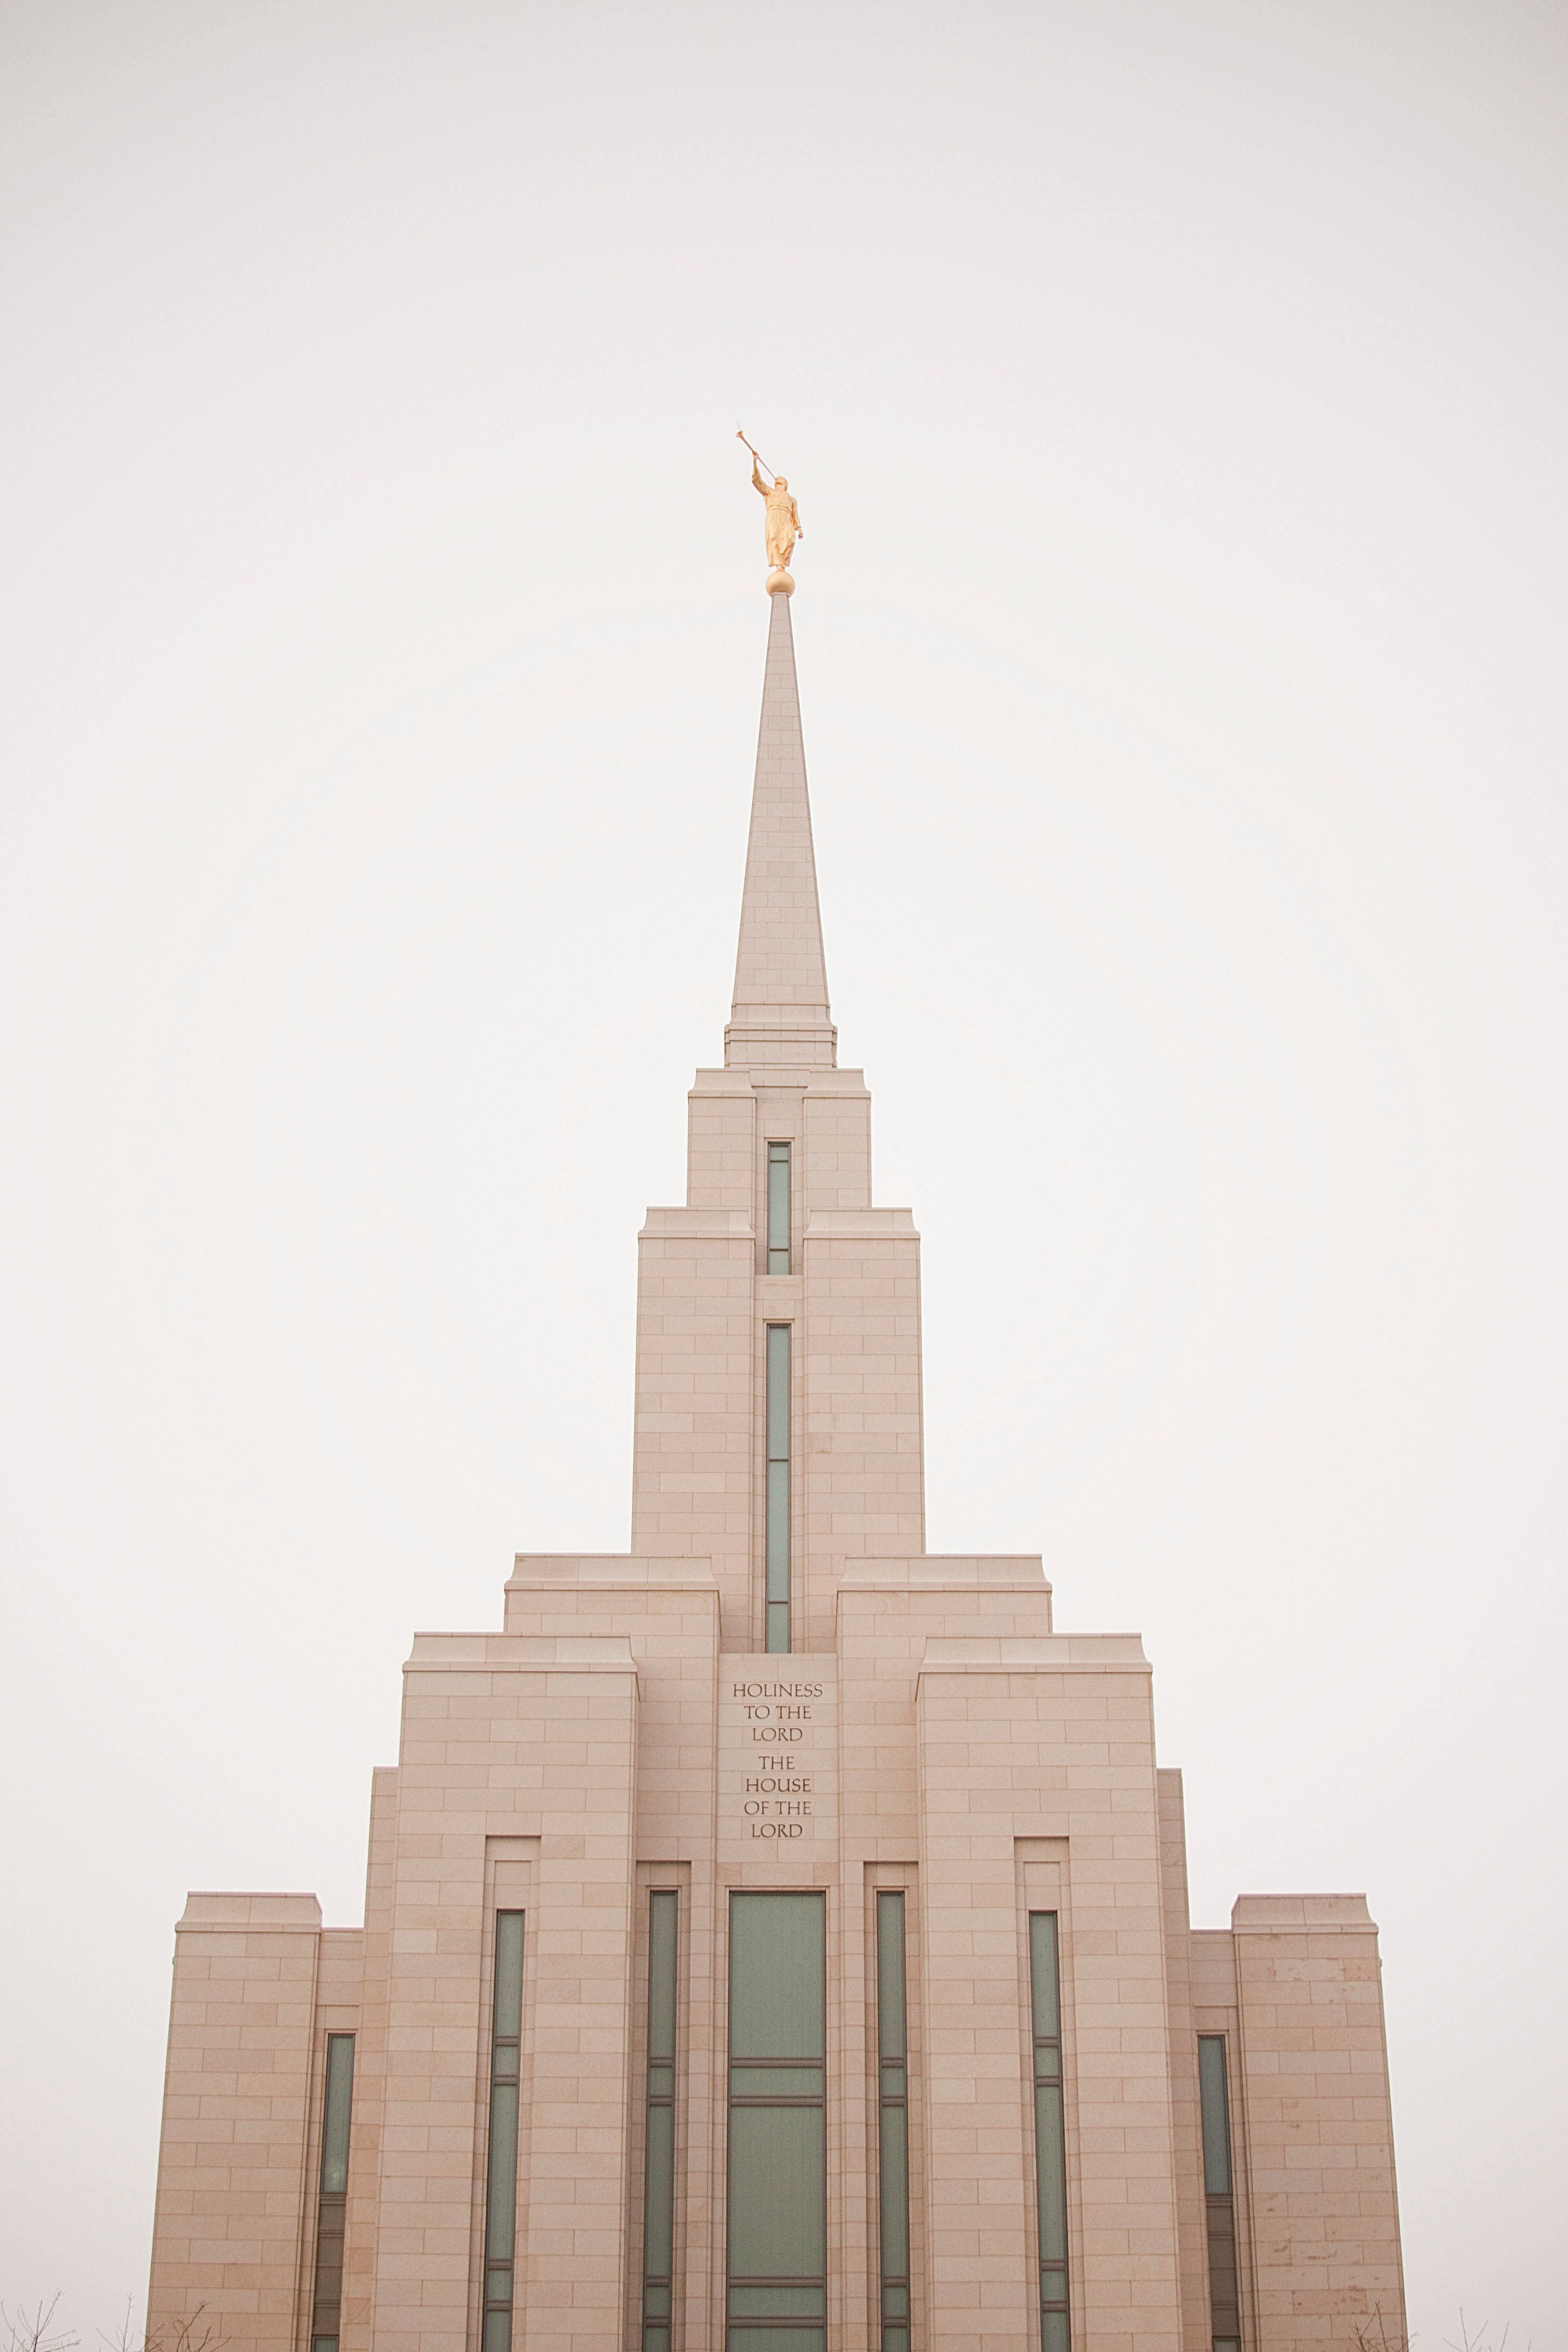 The Oquirrh Mountain Utah Temple spire, including the exterior of the temple.